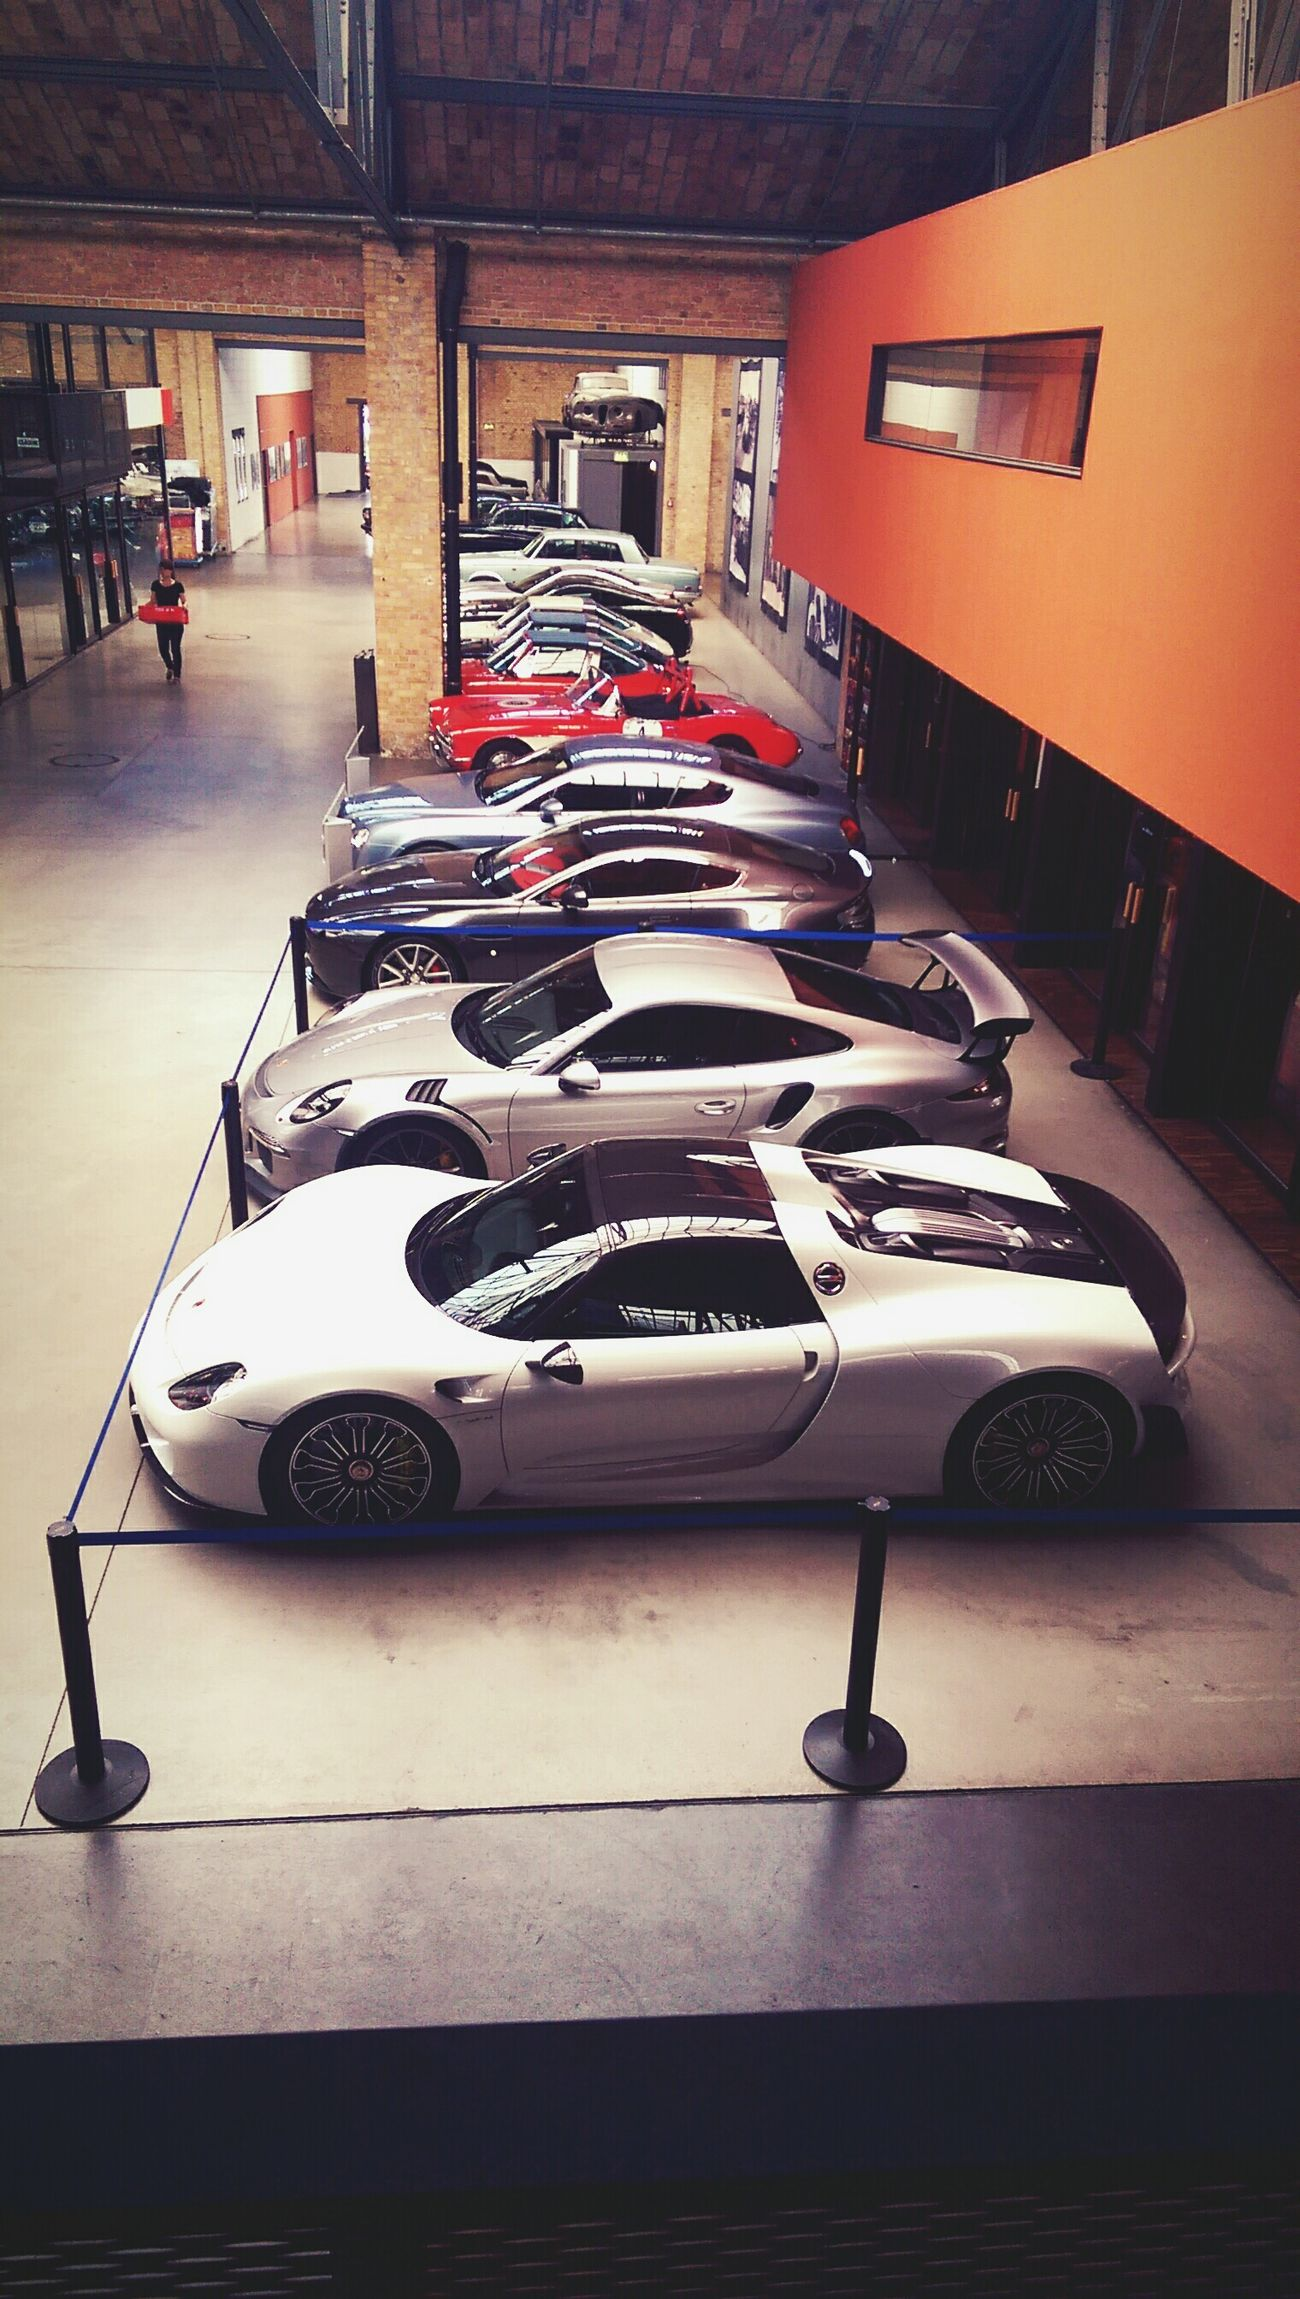 Car Cars Hanging Out Check This Out Relaxing Porsche Porsche GT3RS Astonmartin Ferrari 911 Porsche918 All Mines ( : That Car Tho Berlin Im Done Toomanyhashtags